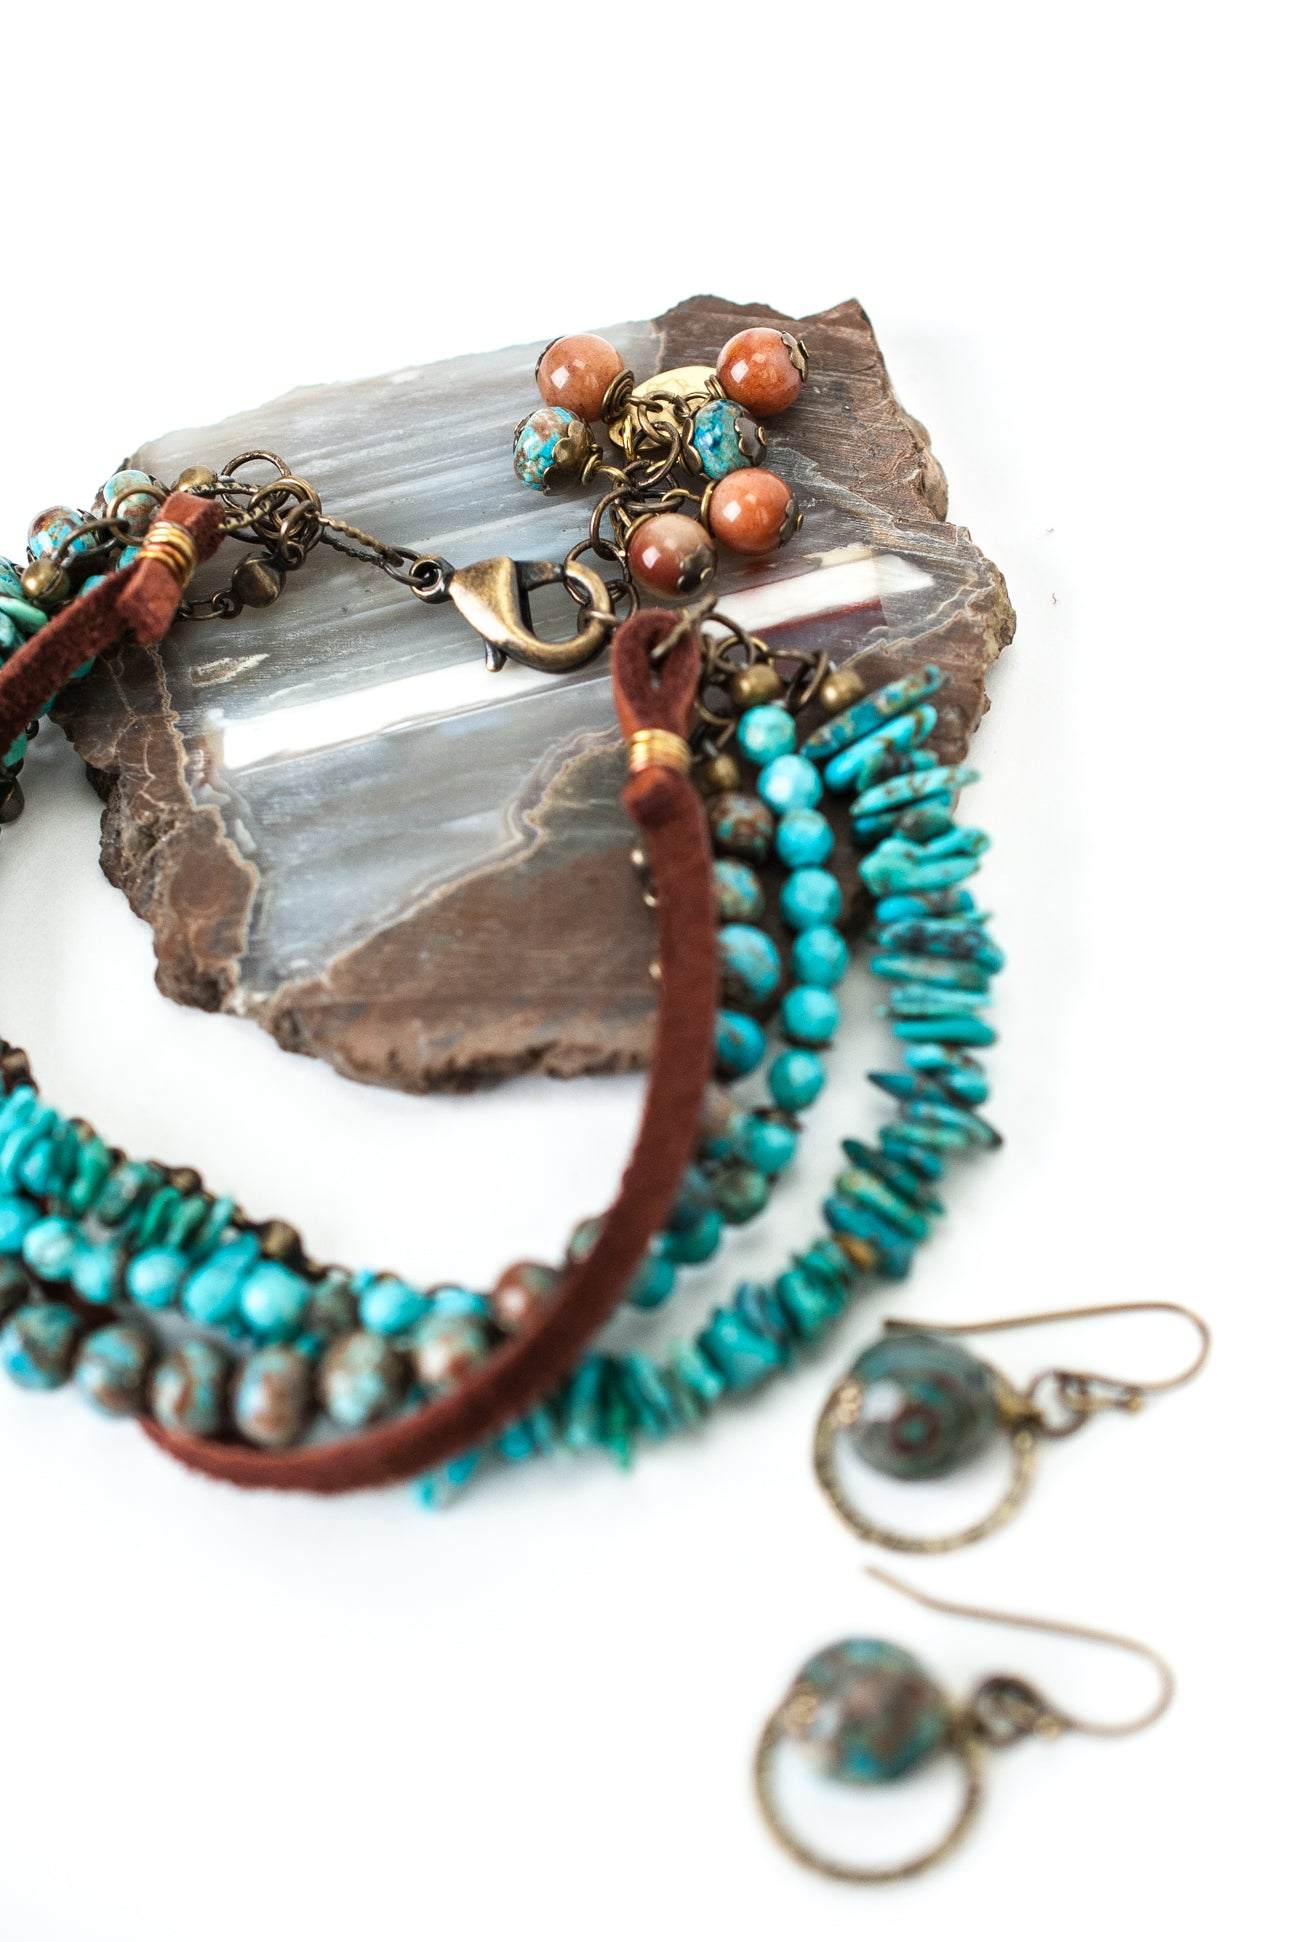 One of a Kind Turquoise, Leather Multistrand Bracelet and Earrings Set